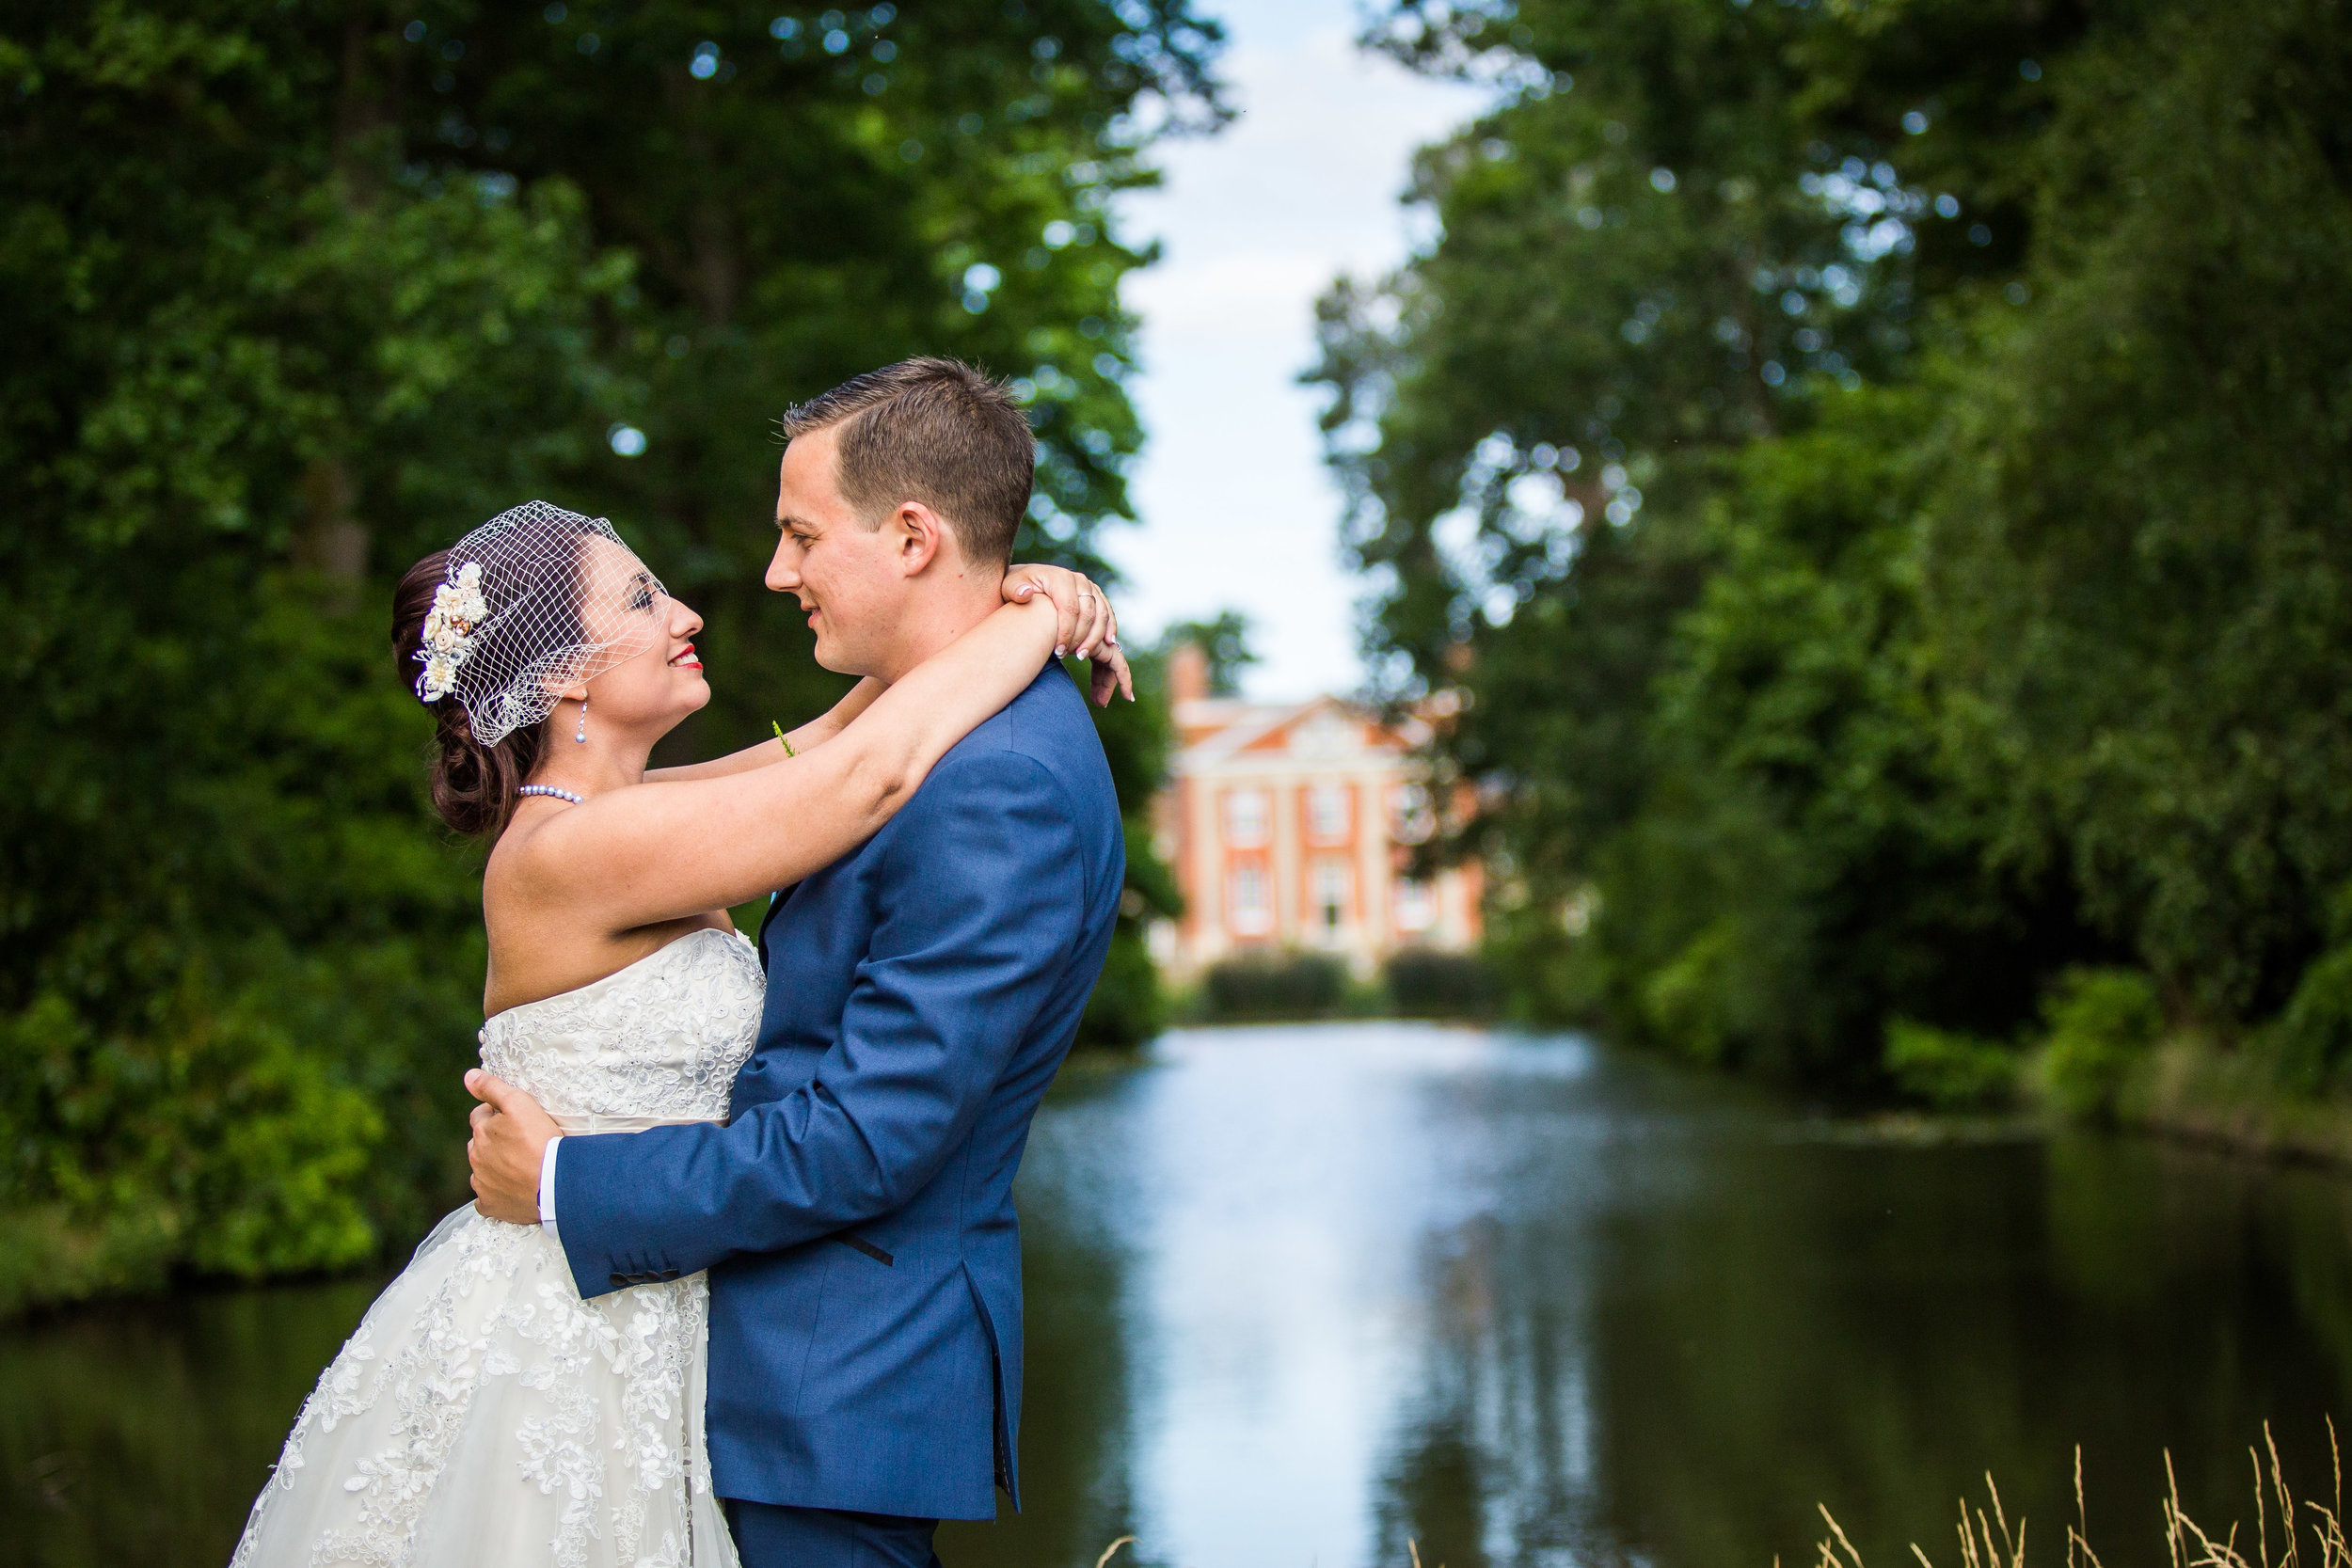 Warbrook - Nikita and Laurence celebrated their wedding at this magnificent mansion in Hook.